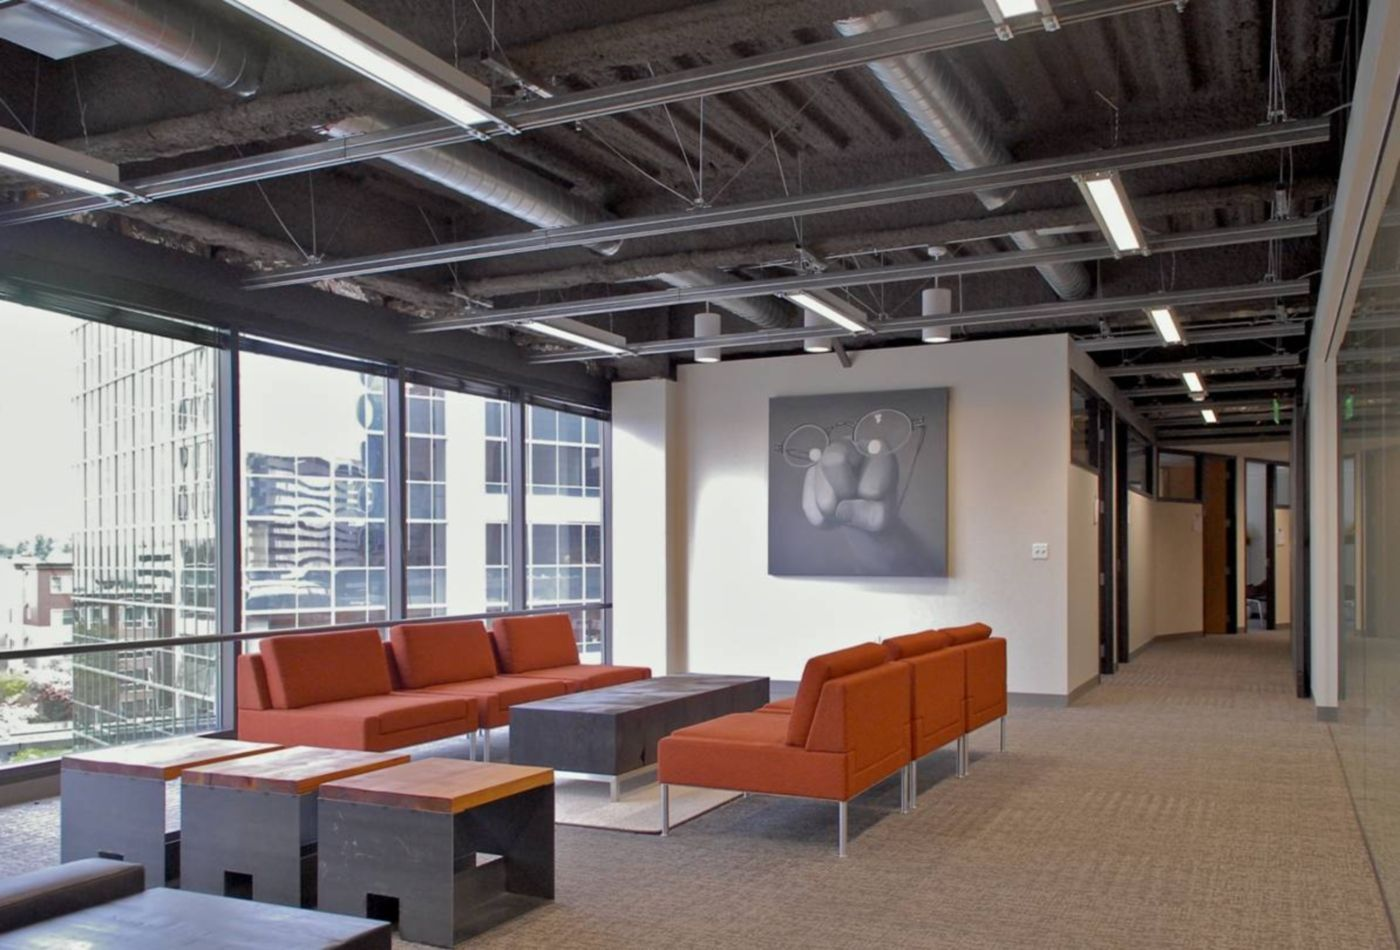 The valve offices business news design projects and ceiling for Commercial office space design ideas